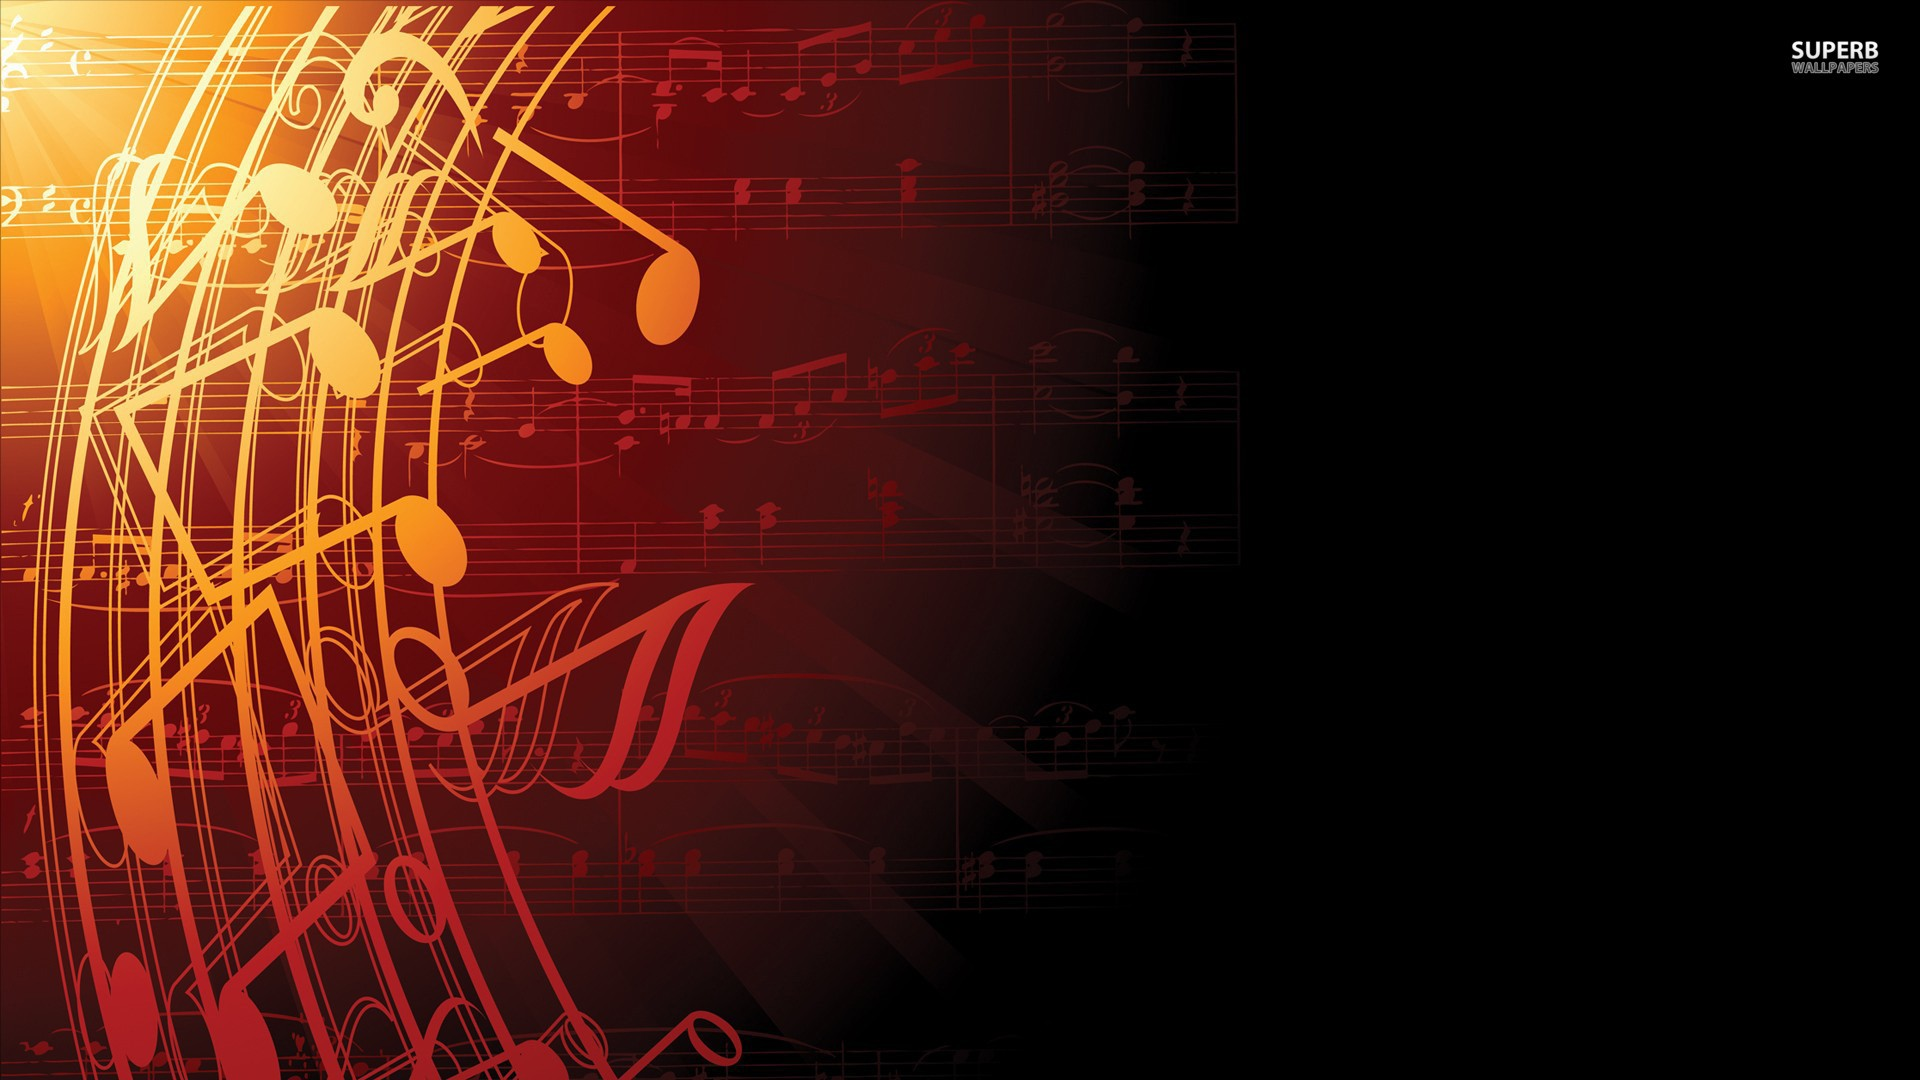 139707-cool-music-backgrounds-1920x1080-for-ipad-2.jpg